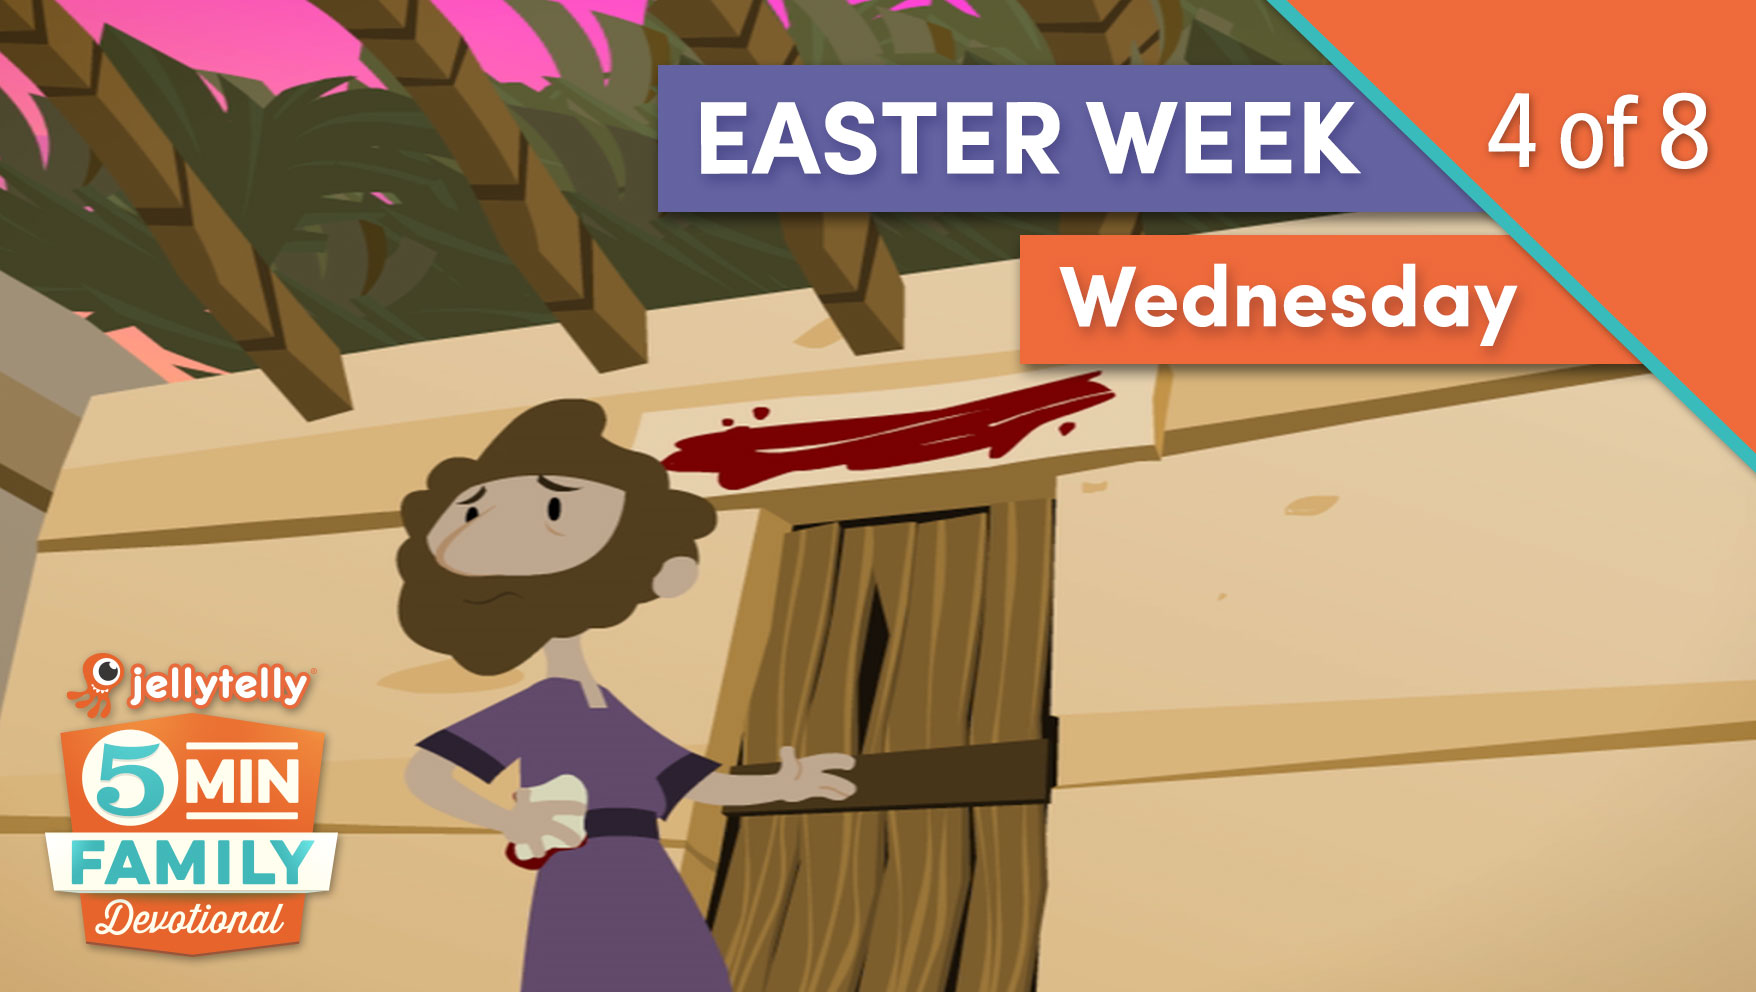 Wednesday - Easter Week 5 Minute Family Devotional